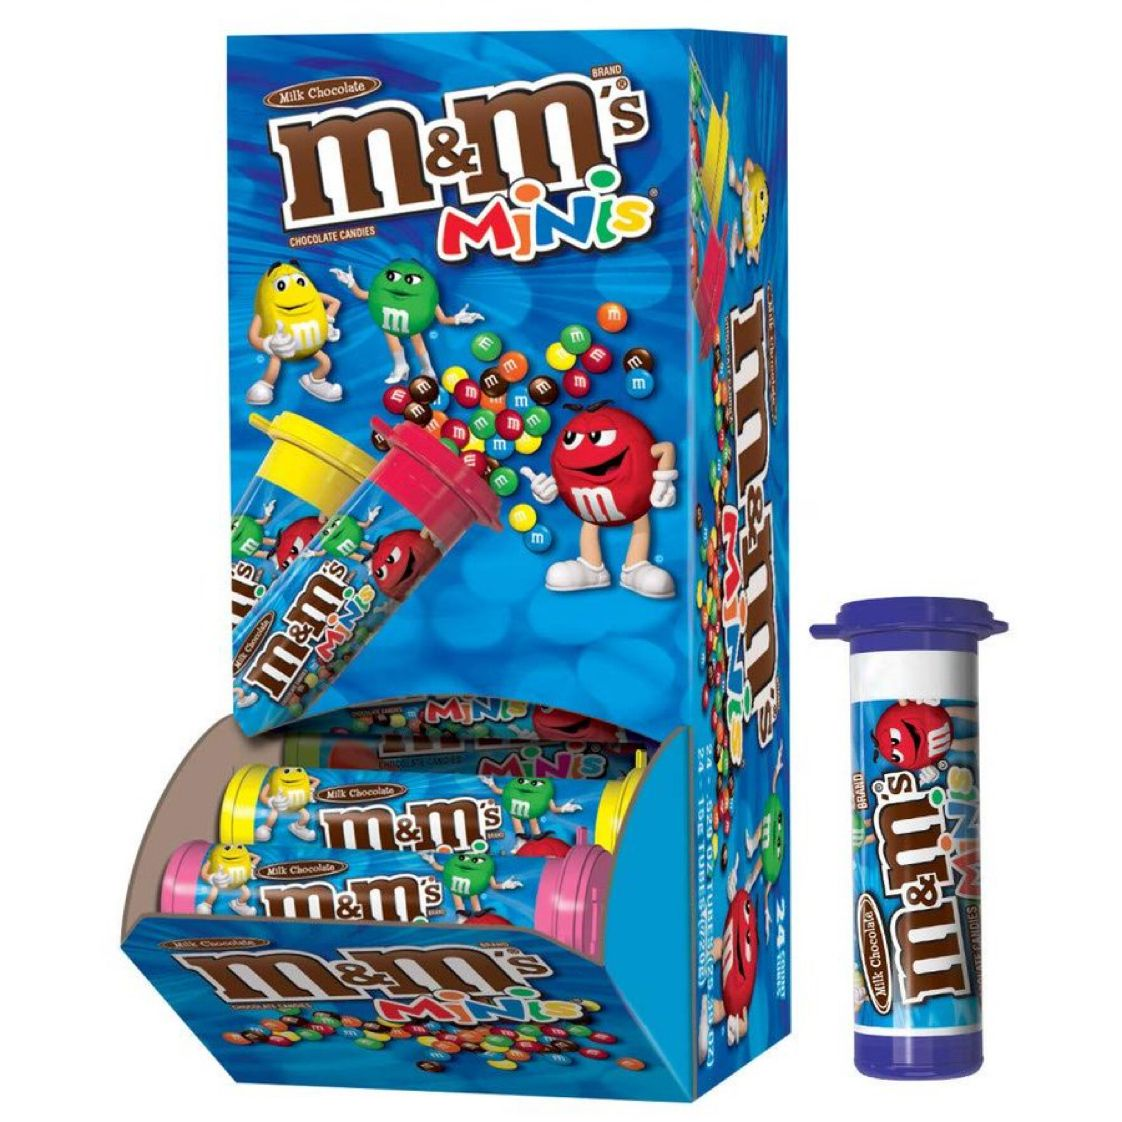 M&M'S MINIS Milk Chocolate Candy, 1.08-Ounce Tubes (Pack of 24)   $16.07 with Free Prime Shipping    #steals #deals #stealsanddeals